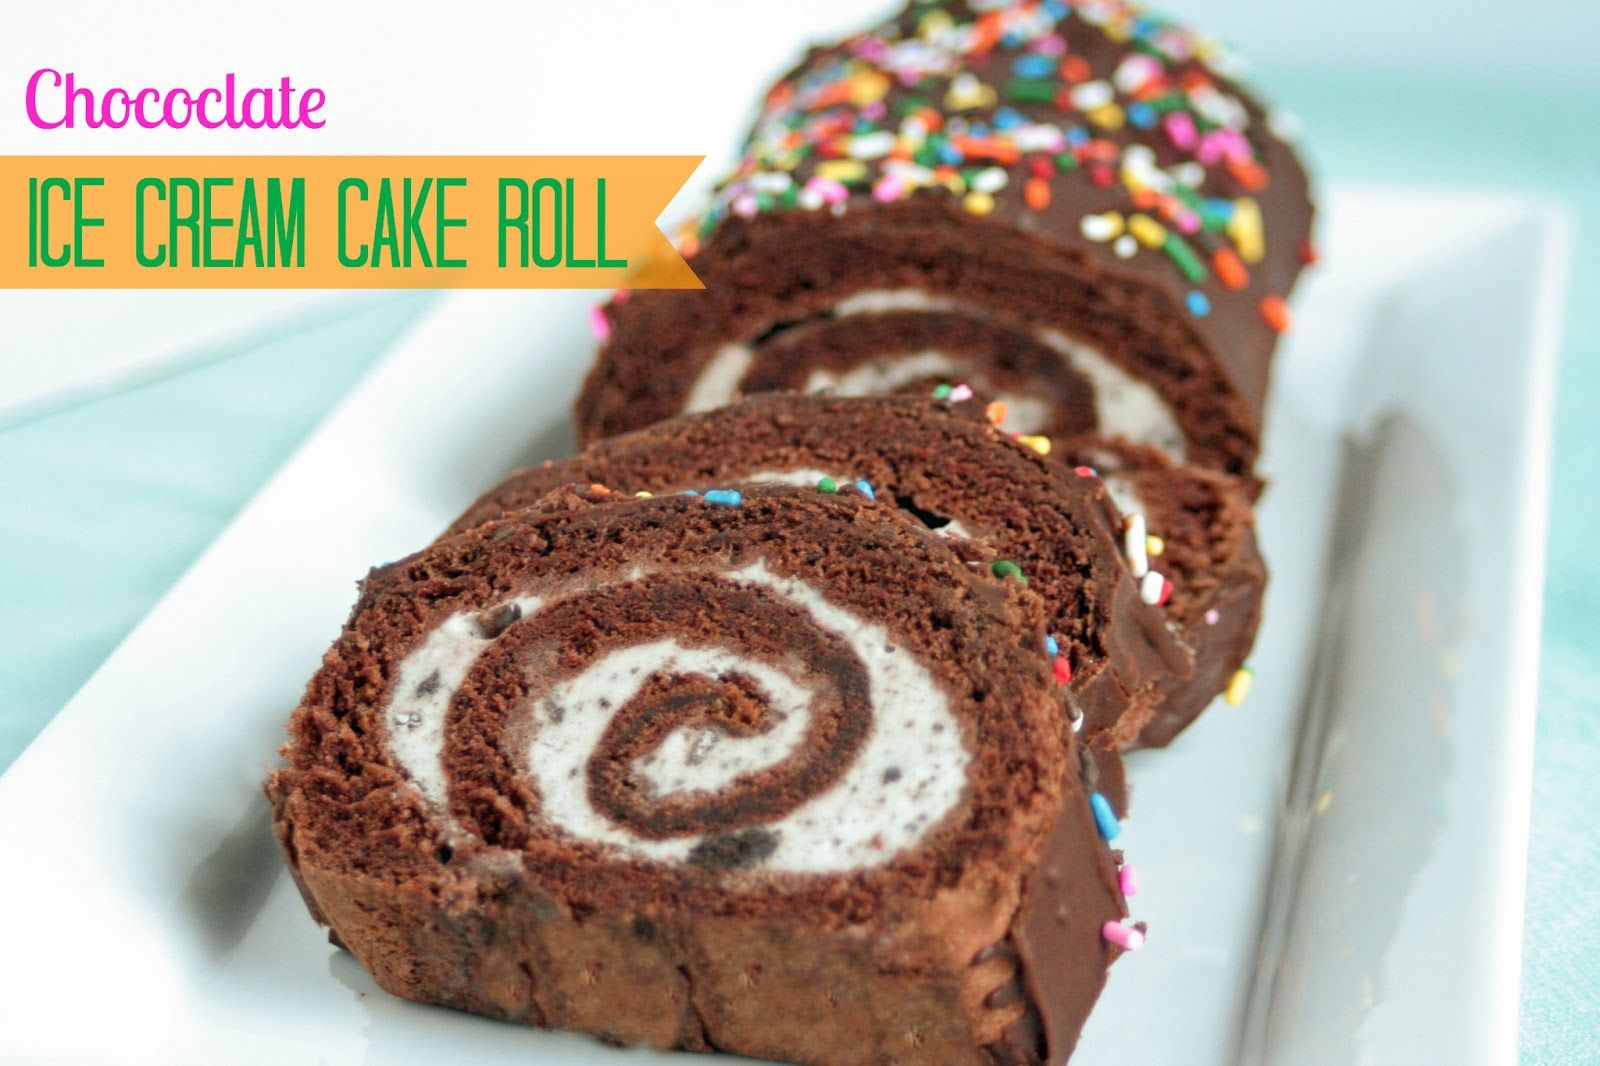 Chocolates And Ice Creams Ice Cream Cake Roll Recipe For